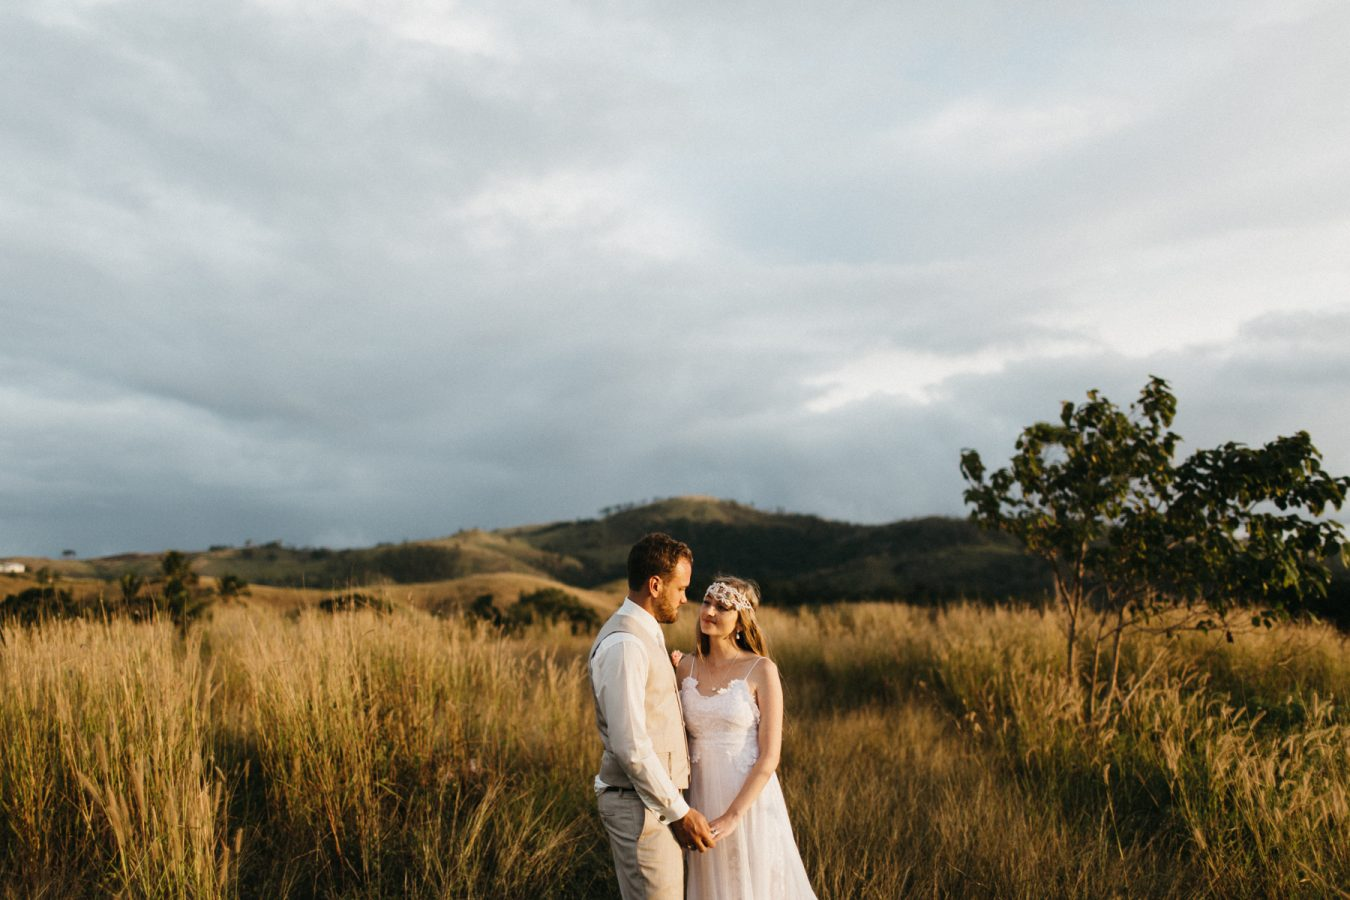 Sam+Bowen-destination-fiji-wedding-coral-coast-shangrila-146